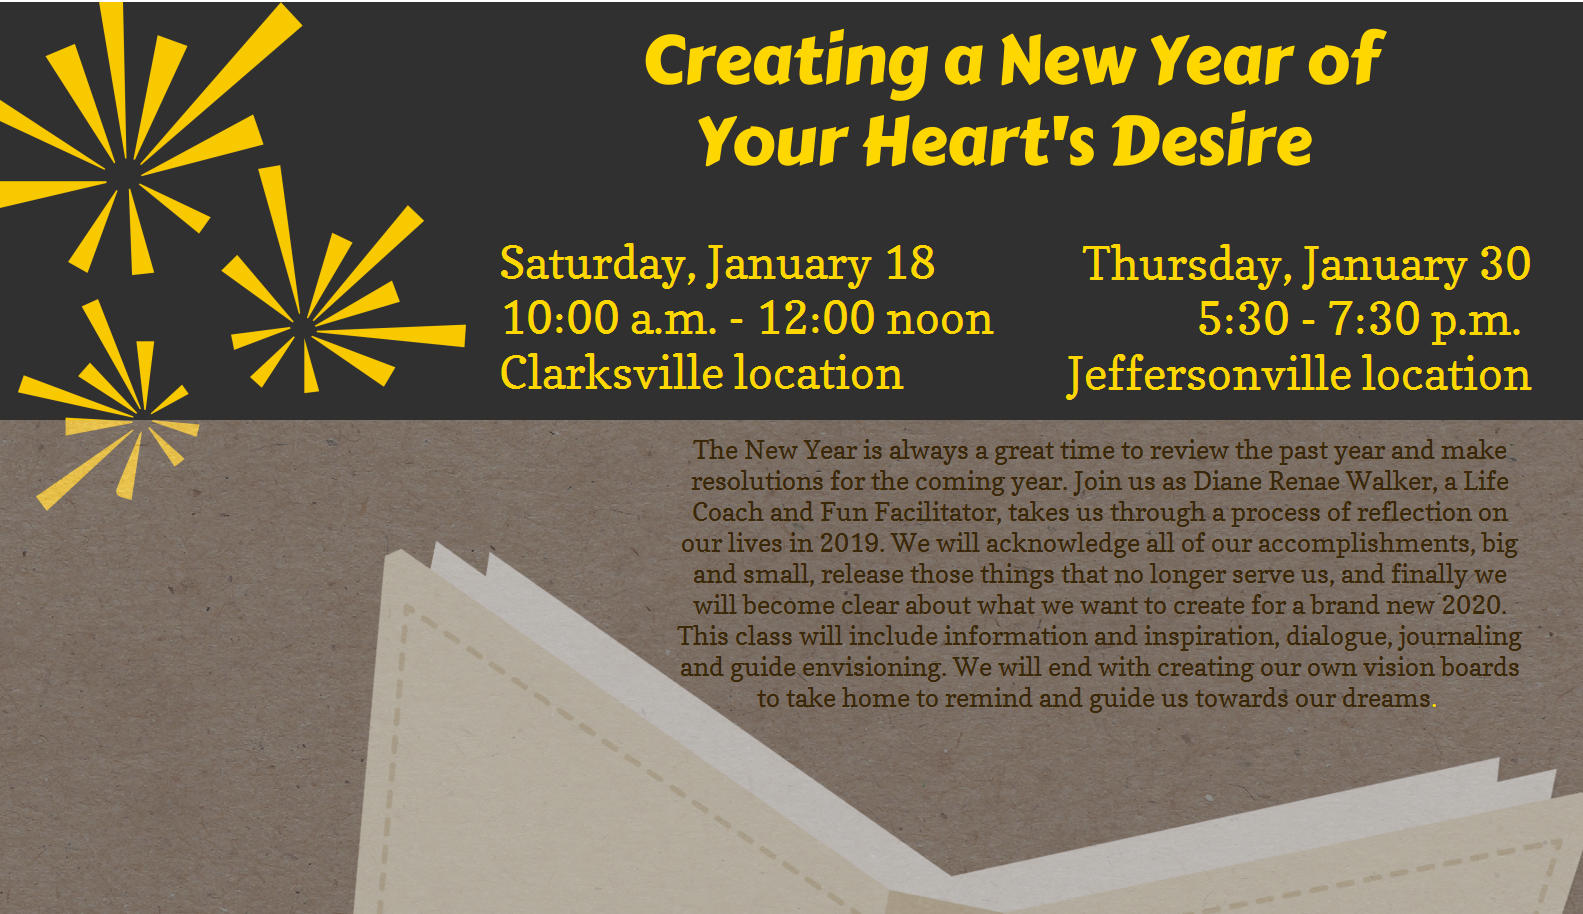 """Flyer advertising """"Creating a New Year of Your Heart's Desire"""" on 18 and 30 January 2020"""